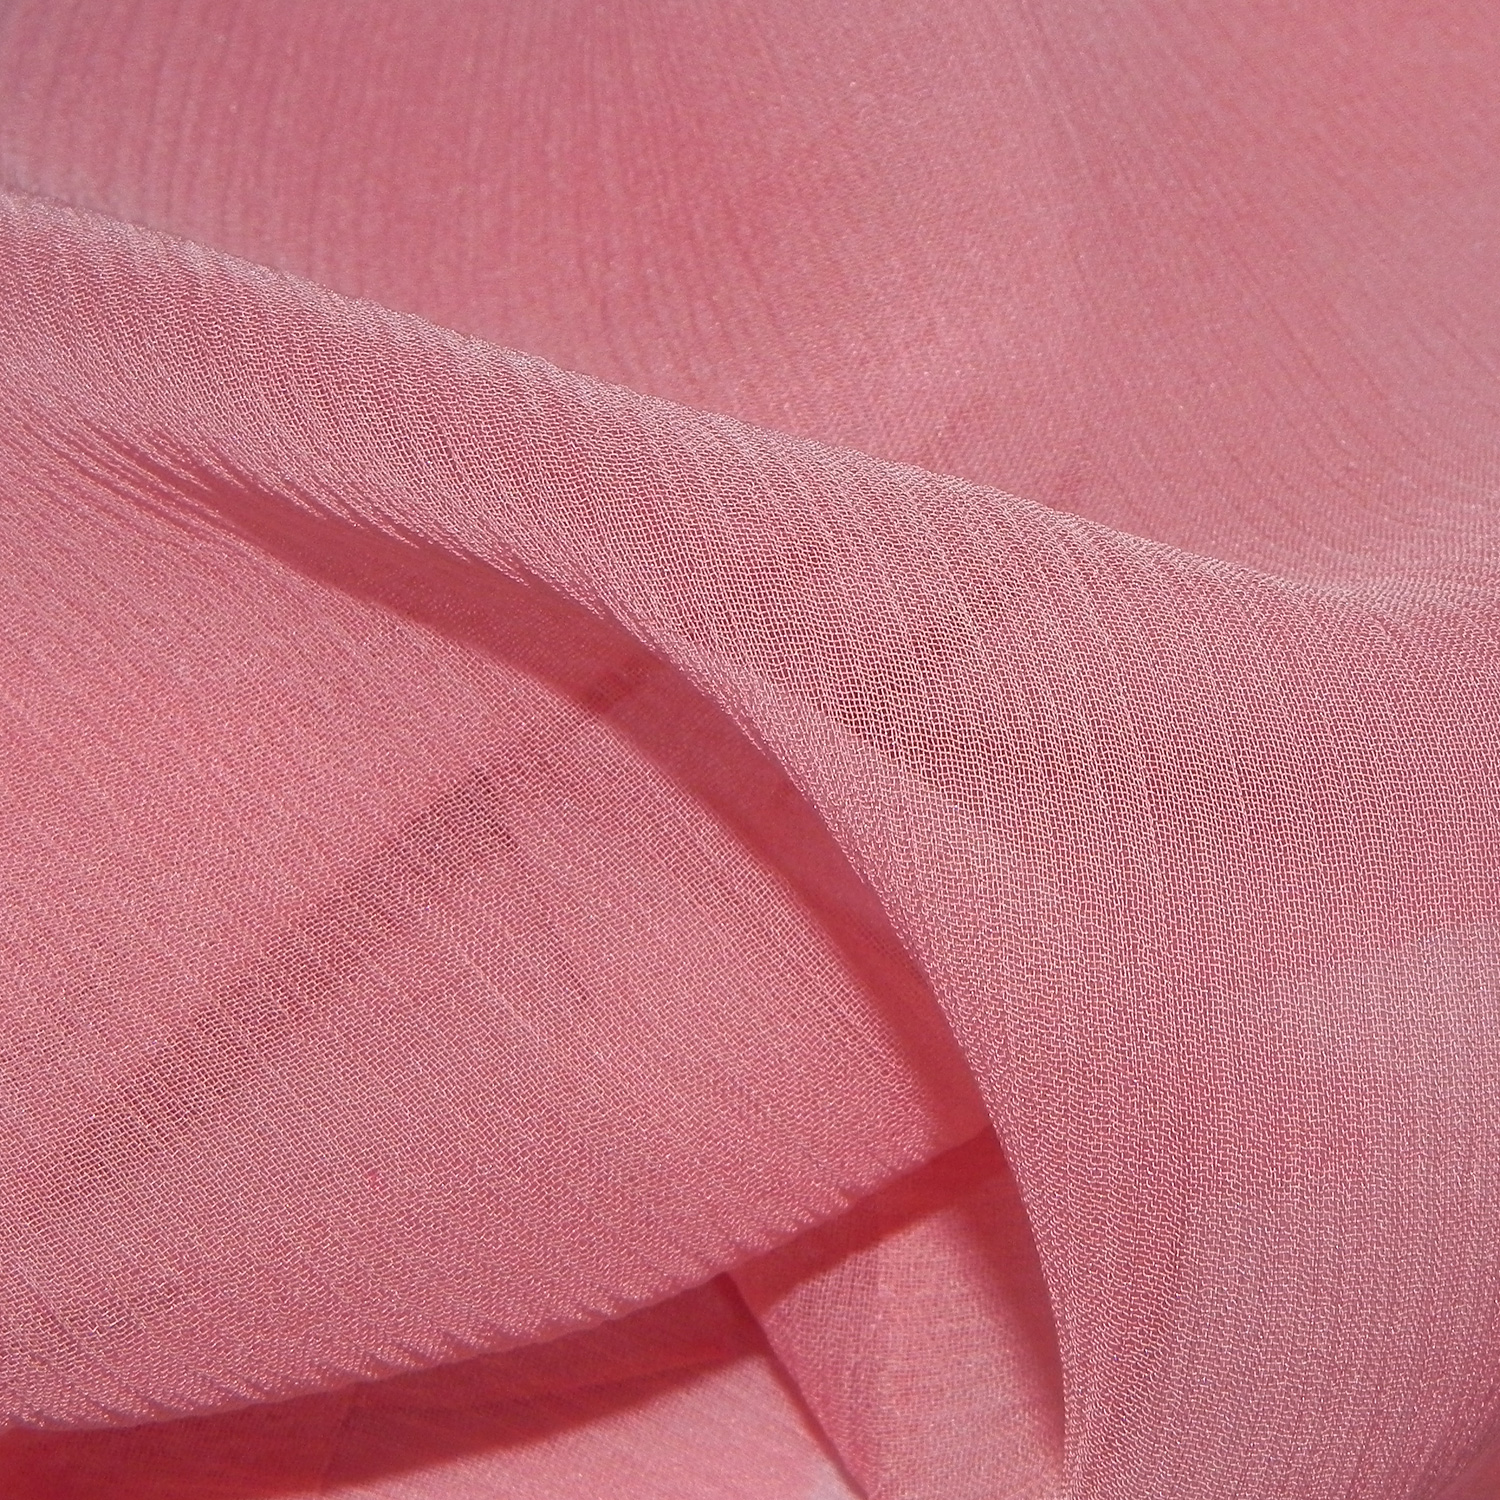 Crinkle Silk Chiffon Fabric Silk Apparel Fabric Crinkle